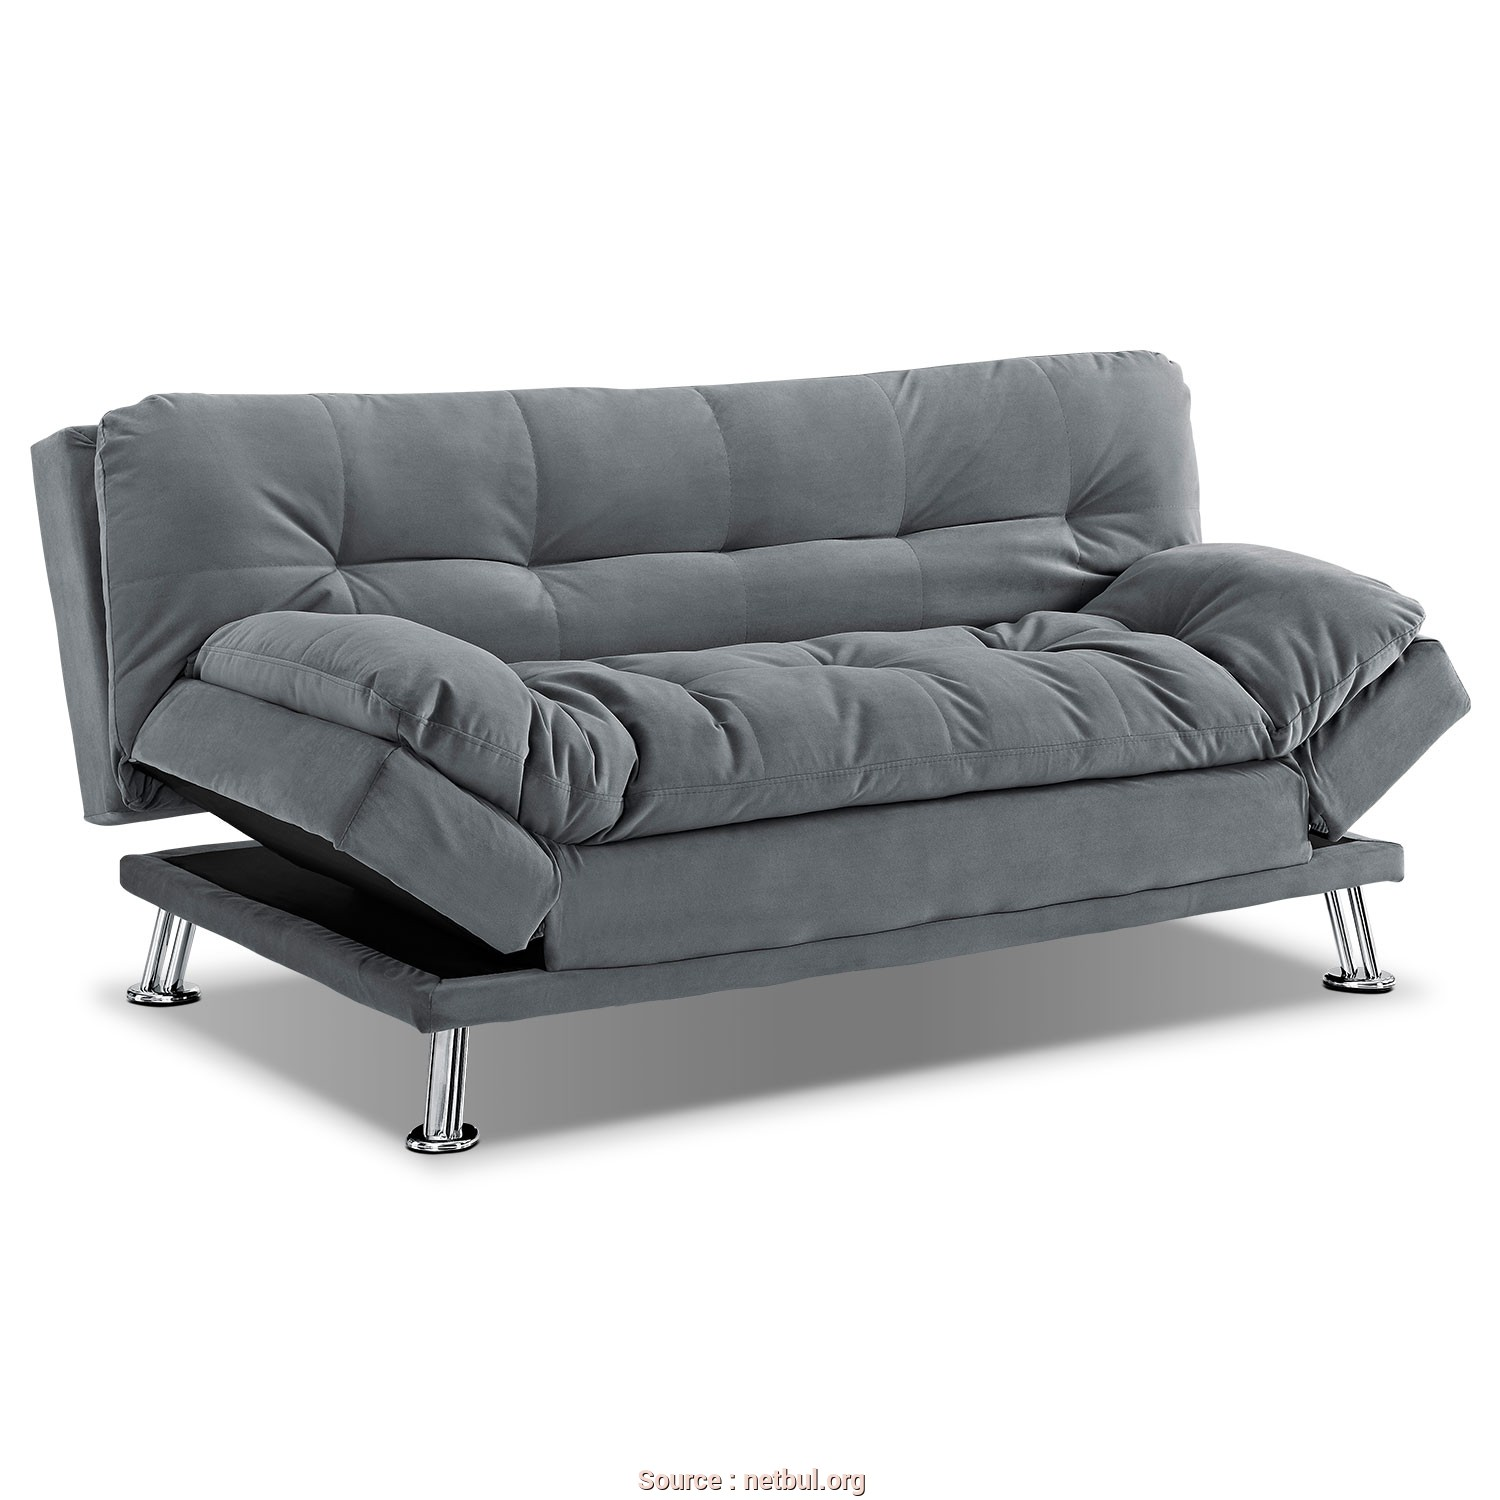 Ikea Vilasund 2 Seat Sofa, Review, Elegante Waltz Gray 2 Pc Futon Sofa, W Chaise Package American Click To Change Image